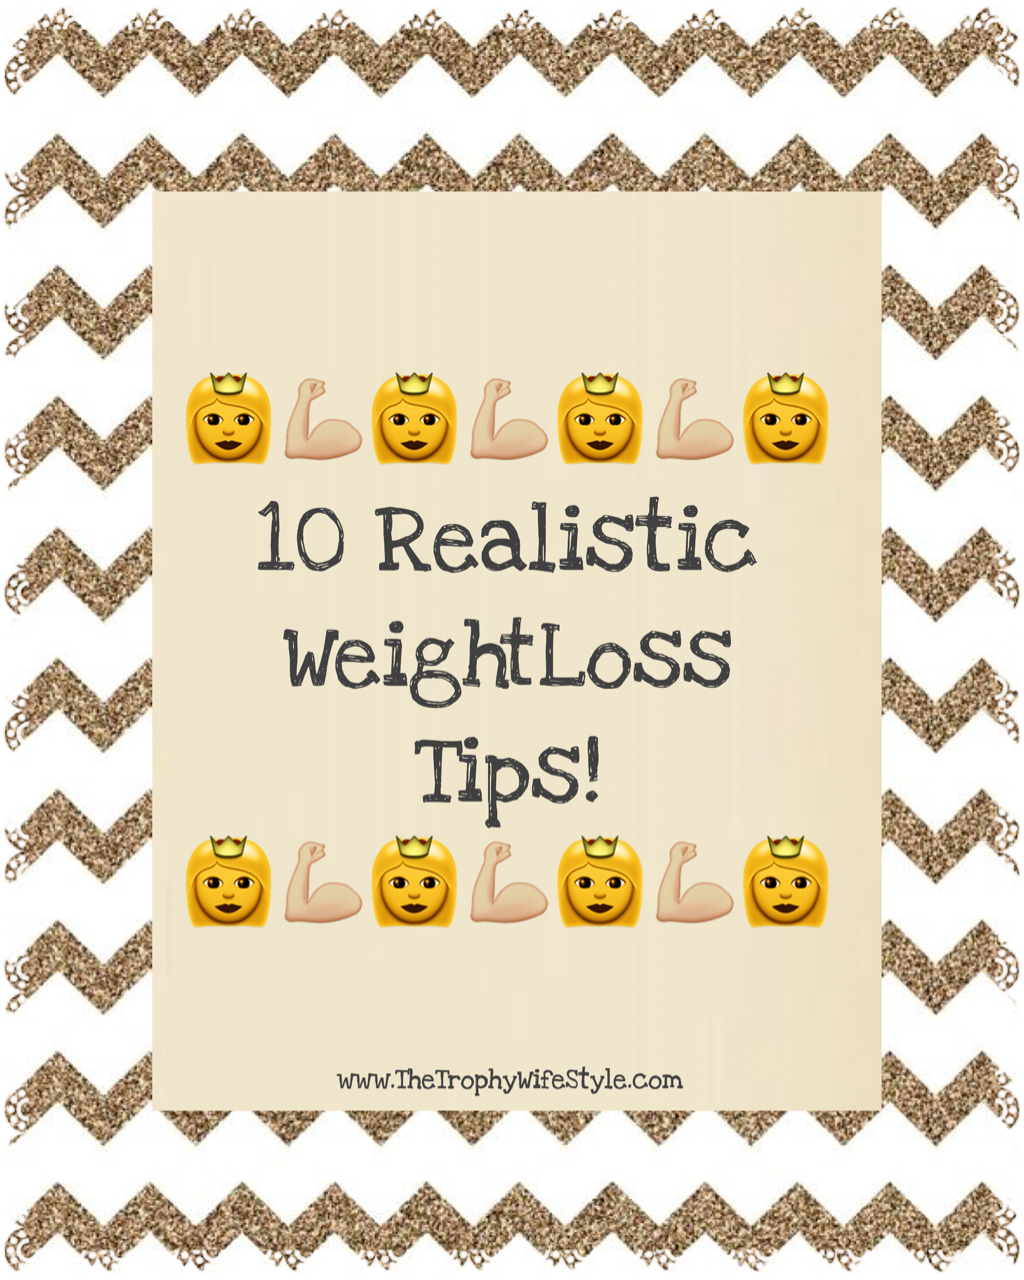 10 Realistic Weight Loss Tips